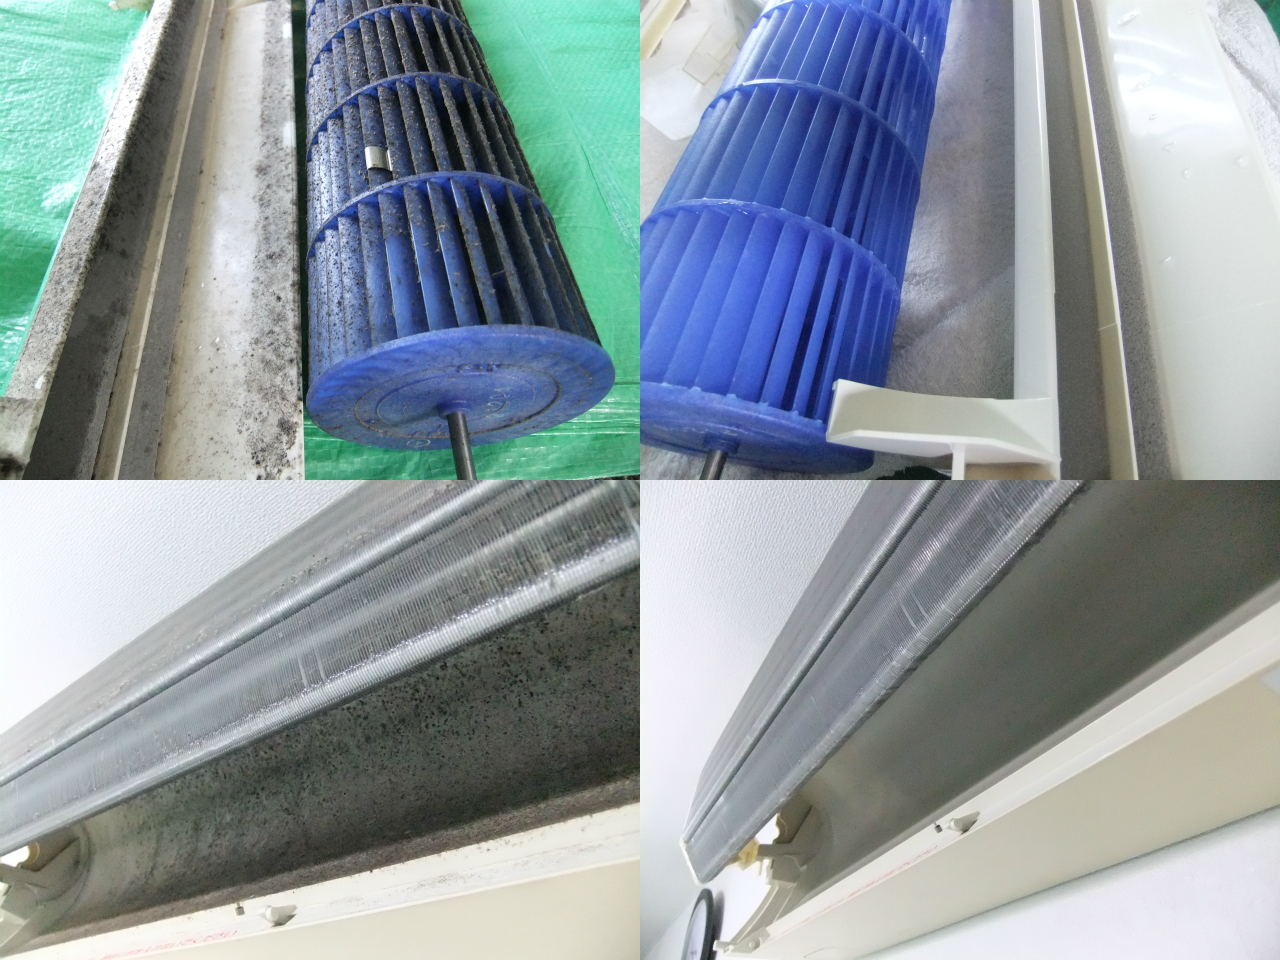 http://ajras.net/images/120817-aircon1.jpg